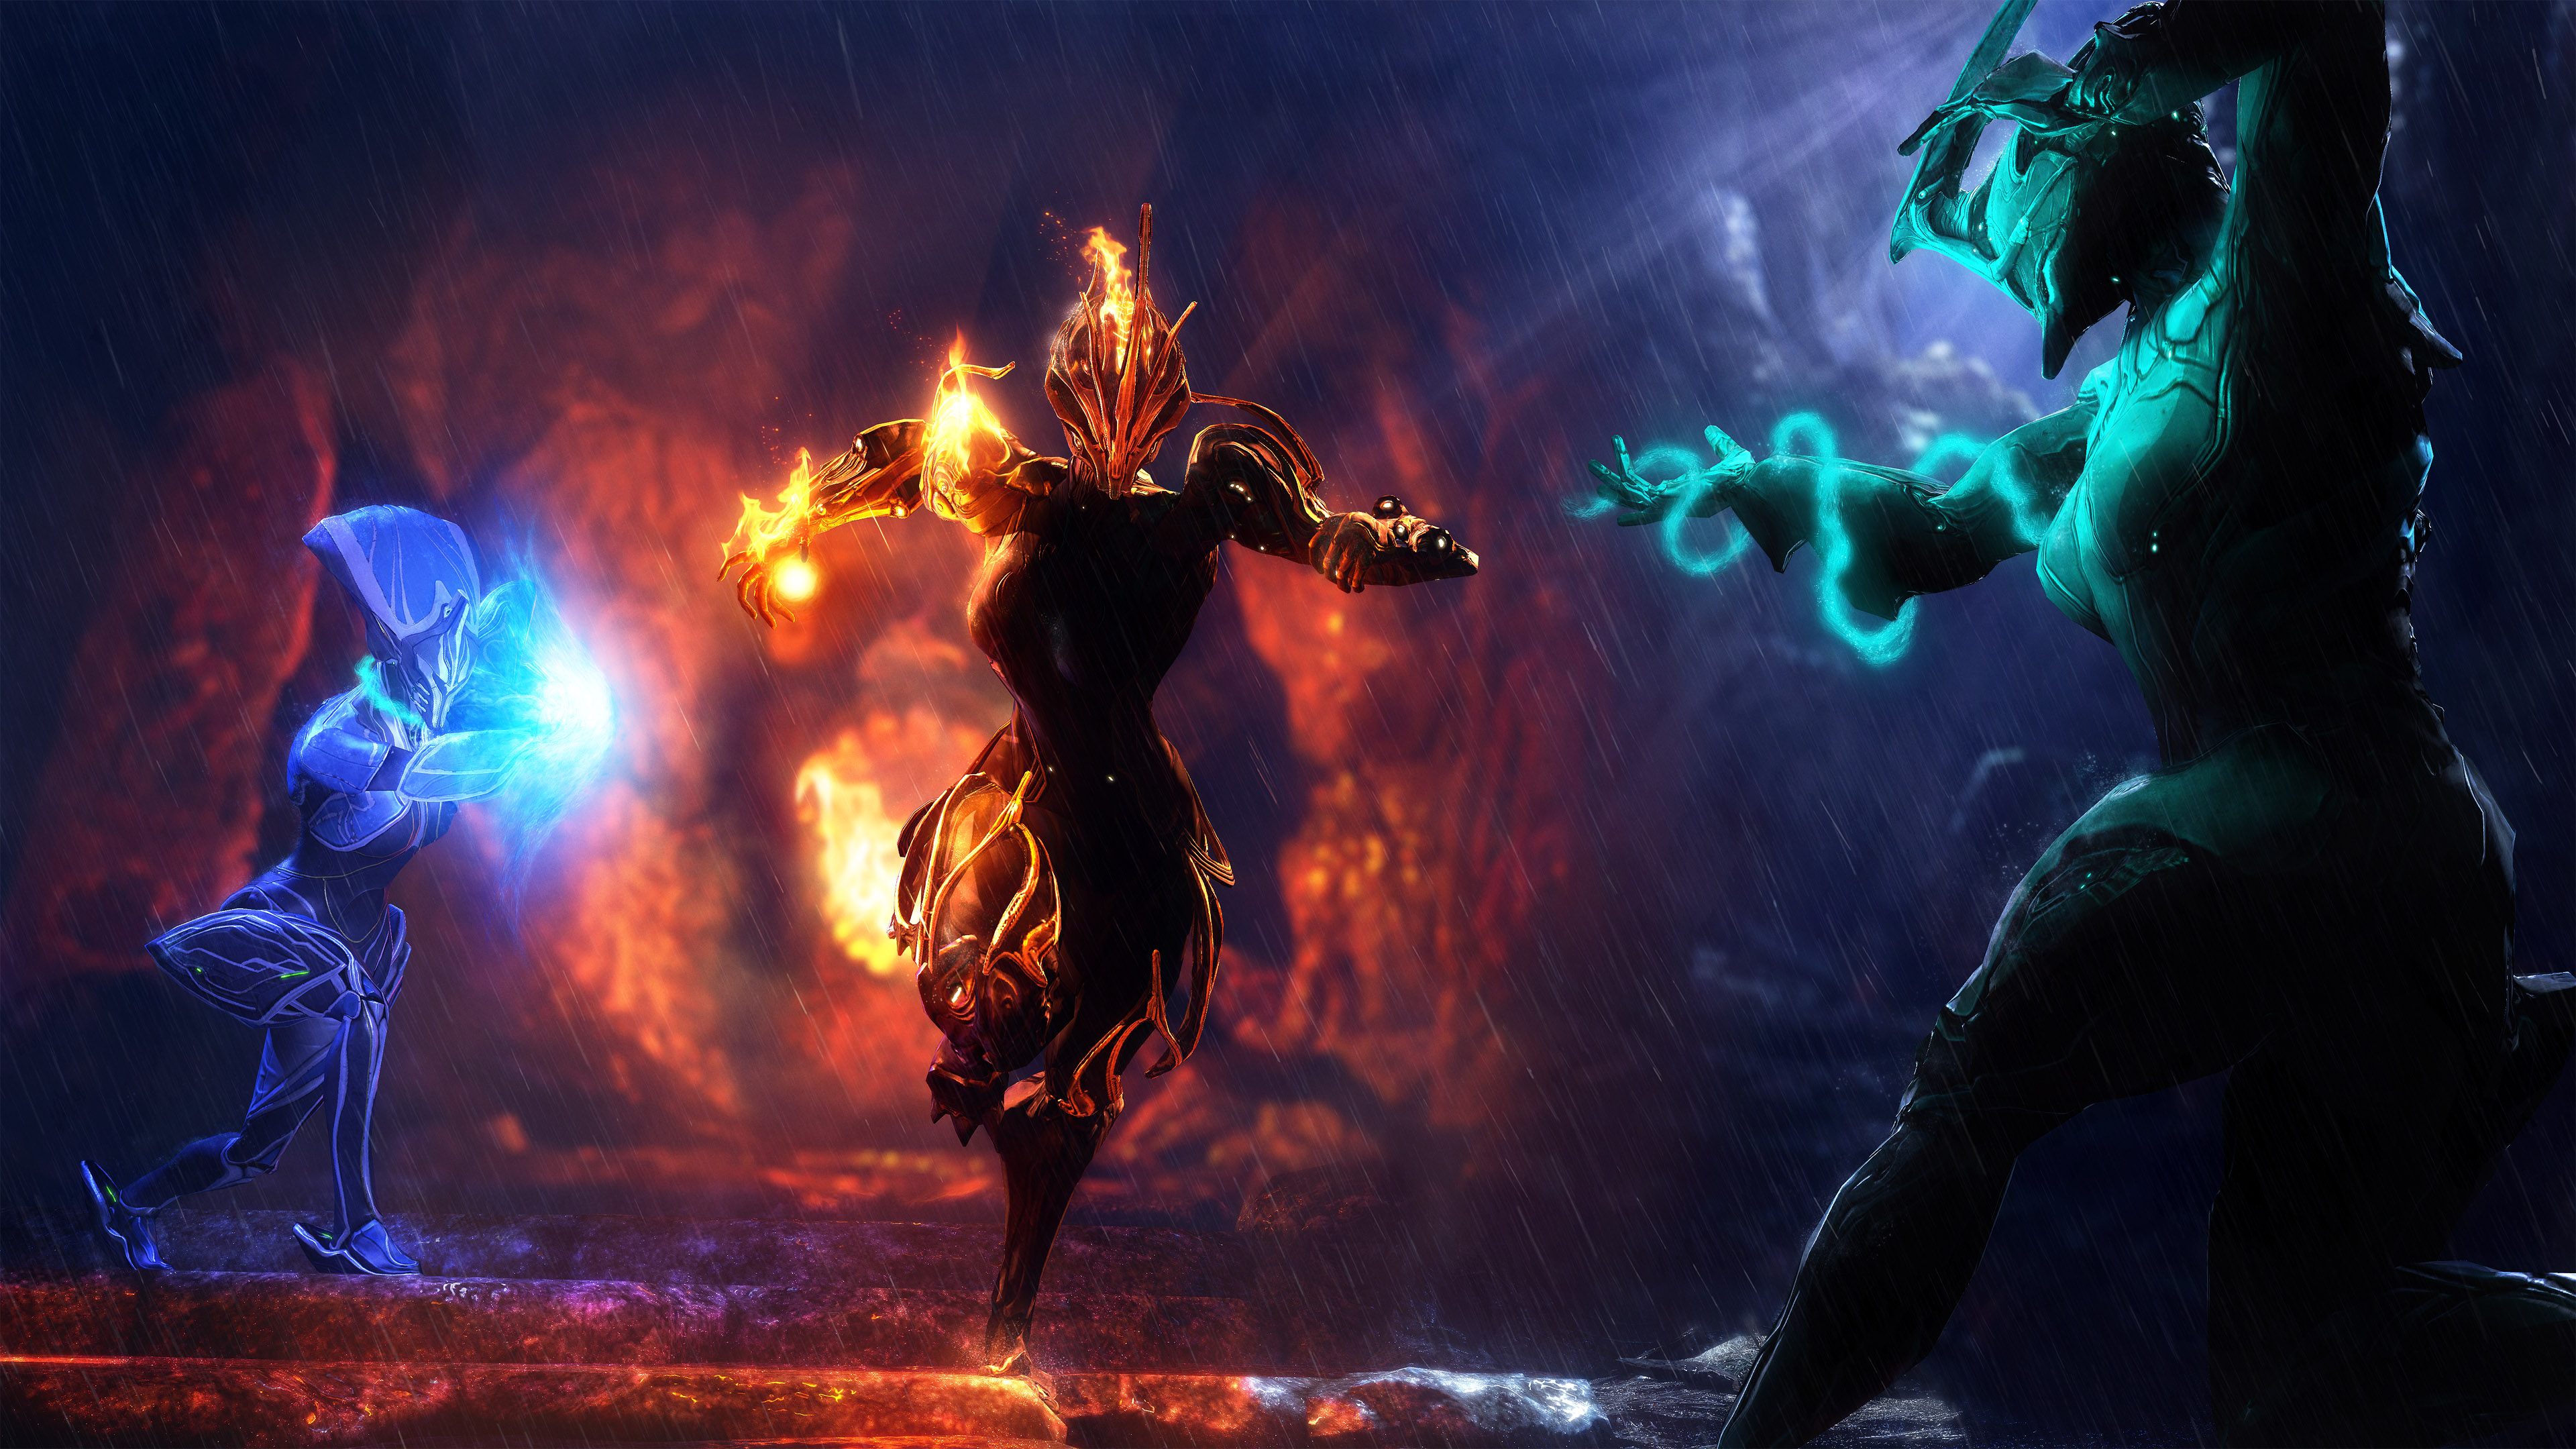 21 warframe hd wallpapers backgrounds wallpaper abyss